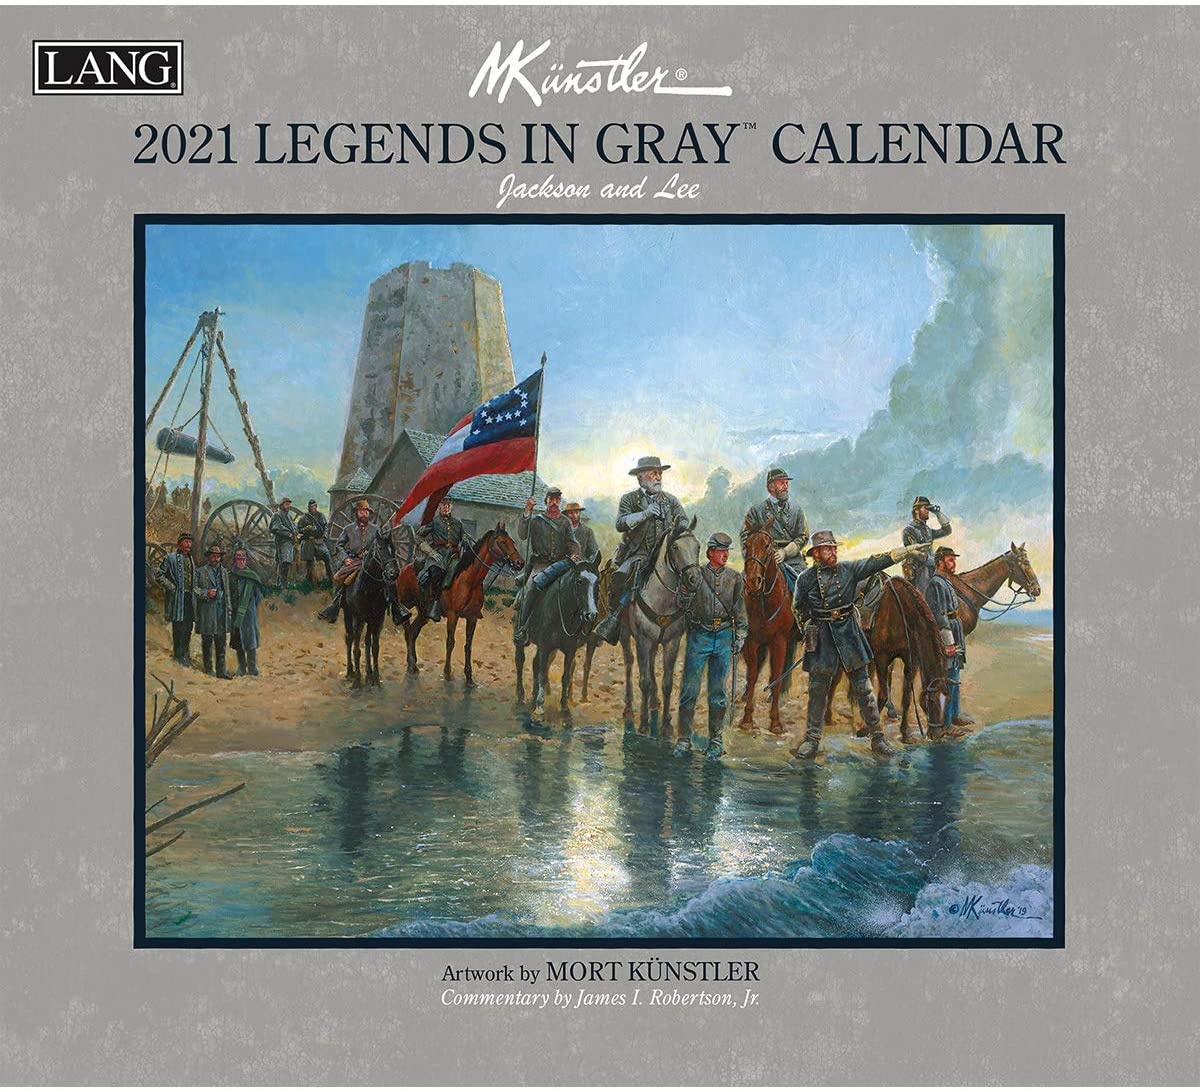 LANG Legends in Gray 2021 Wall Calendar (21991001923)